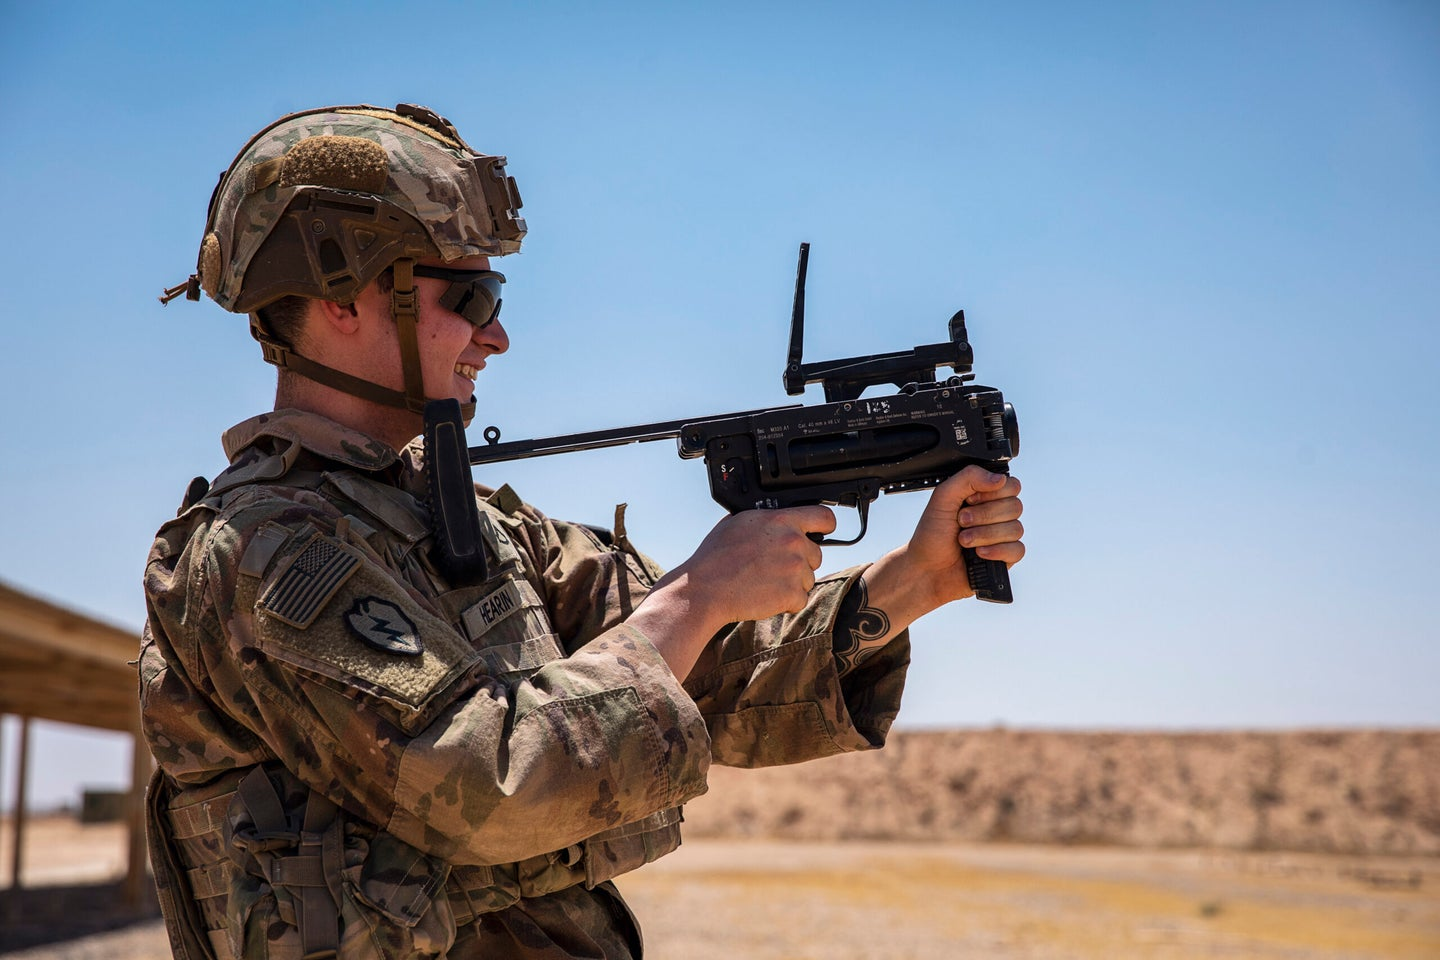 The Army wants a new high-powered grenade launcher to wreck armored targets and drones